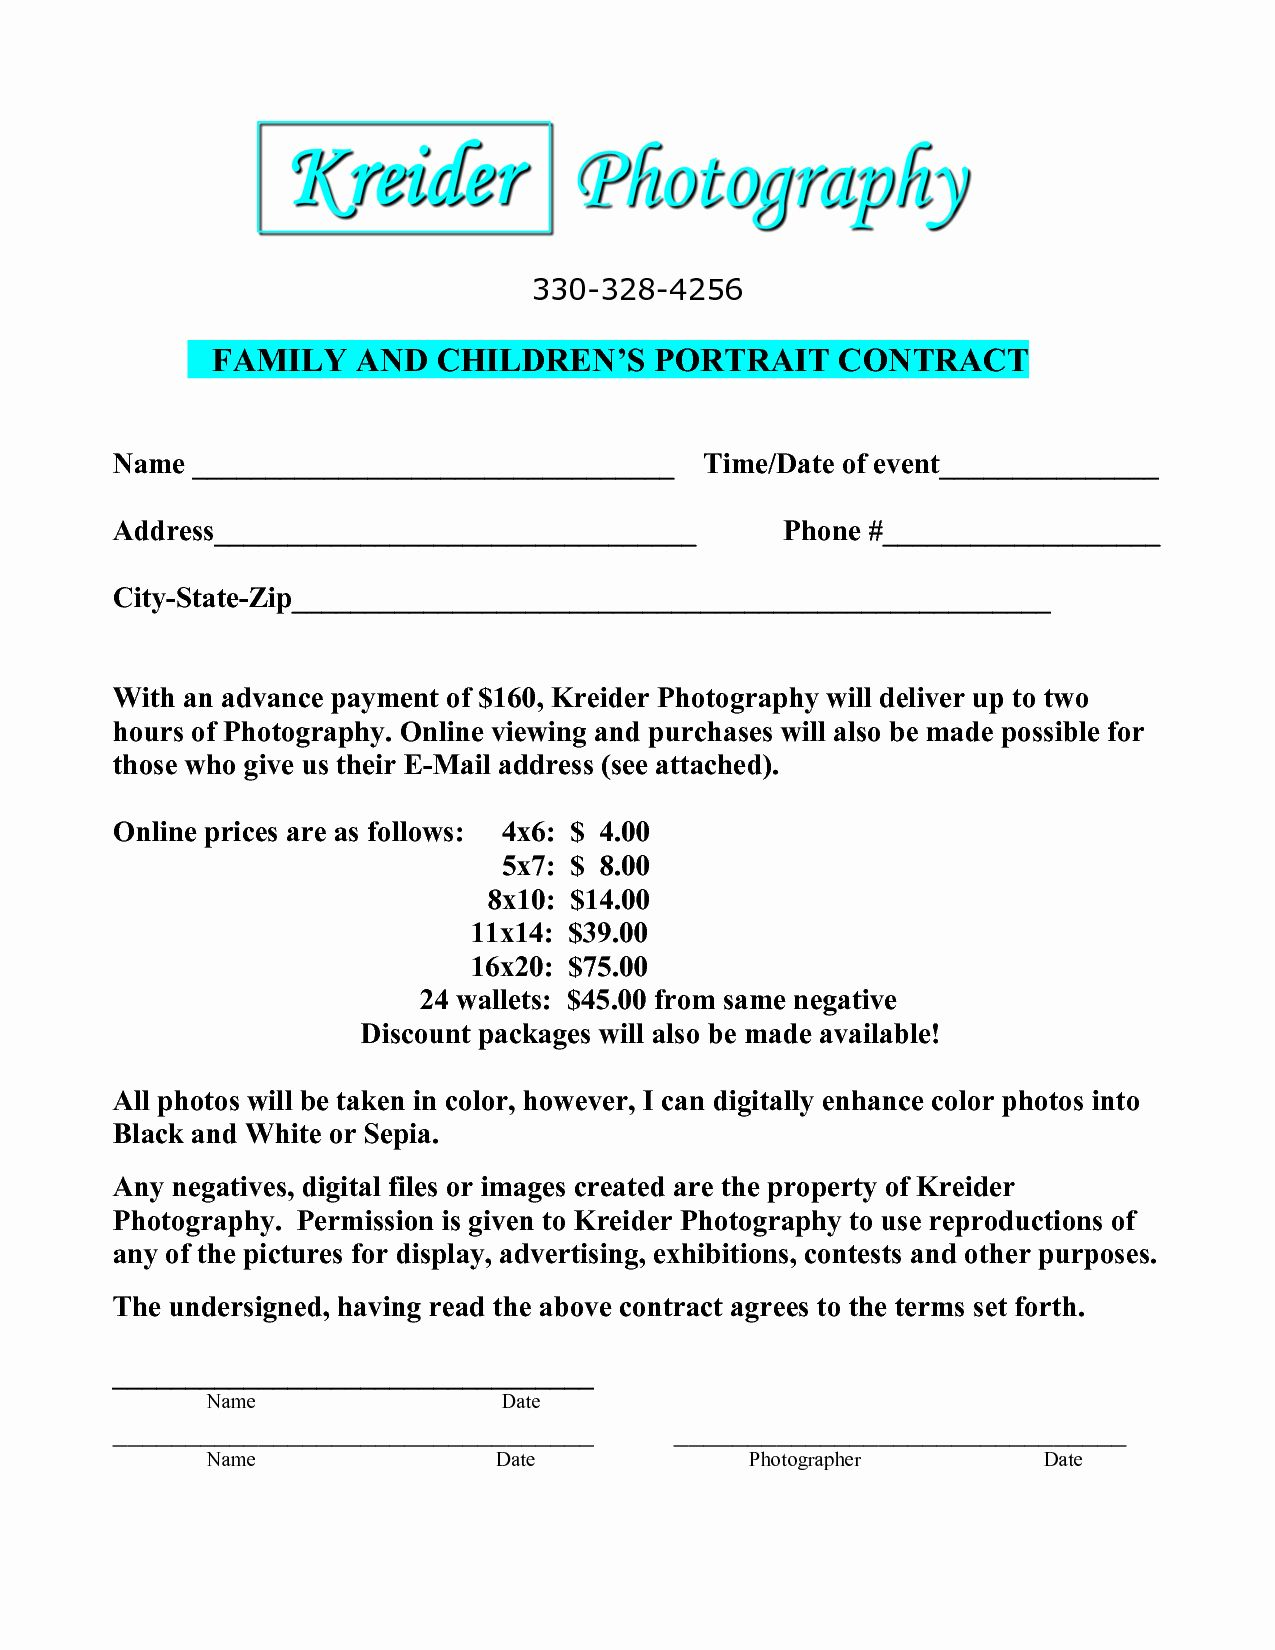 portrait photography contract template awesome resume format editable pdf download good application letter for employment nursing objective statement examples